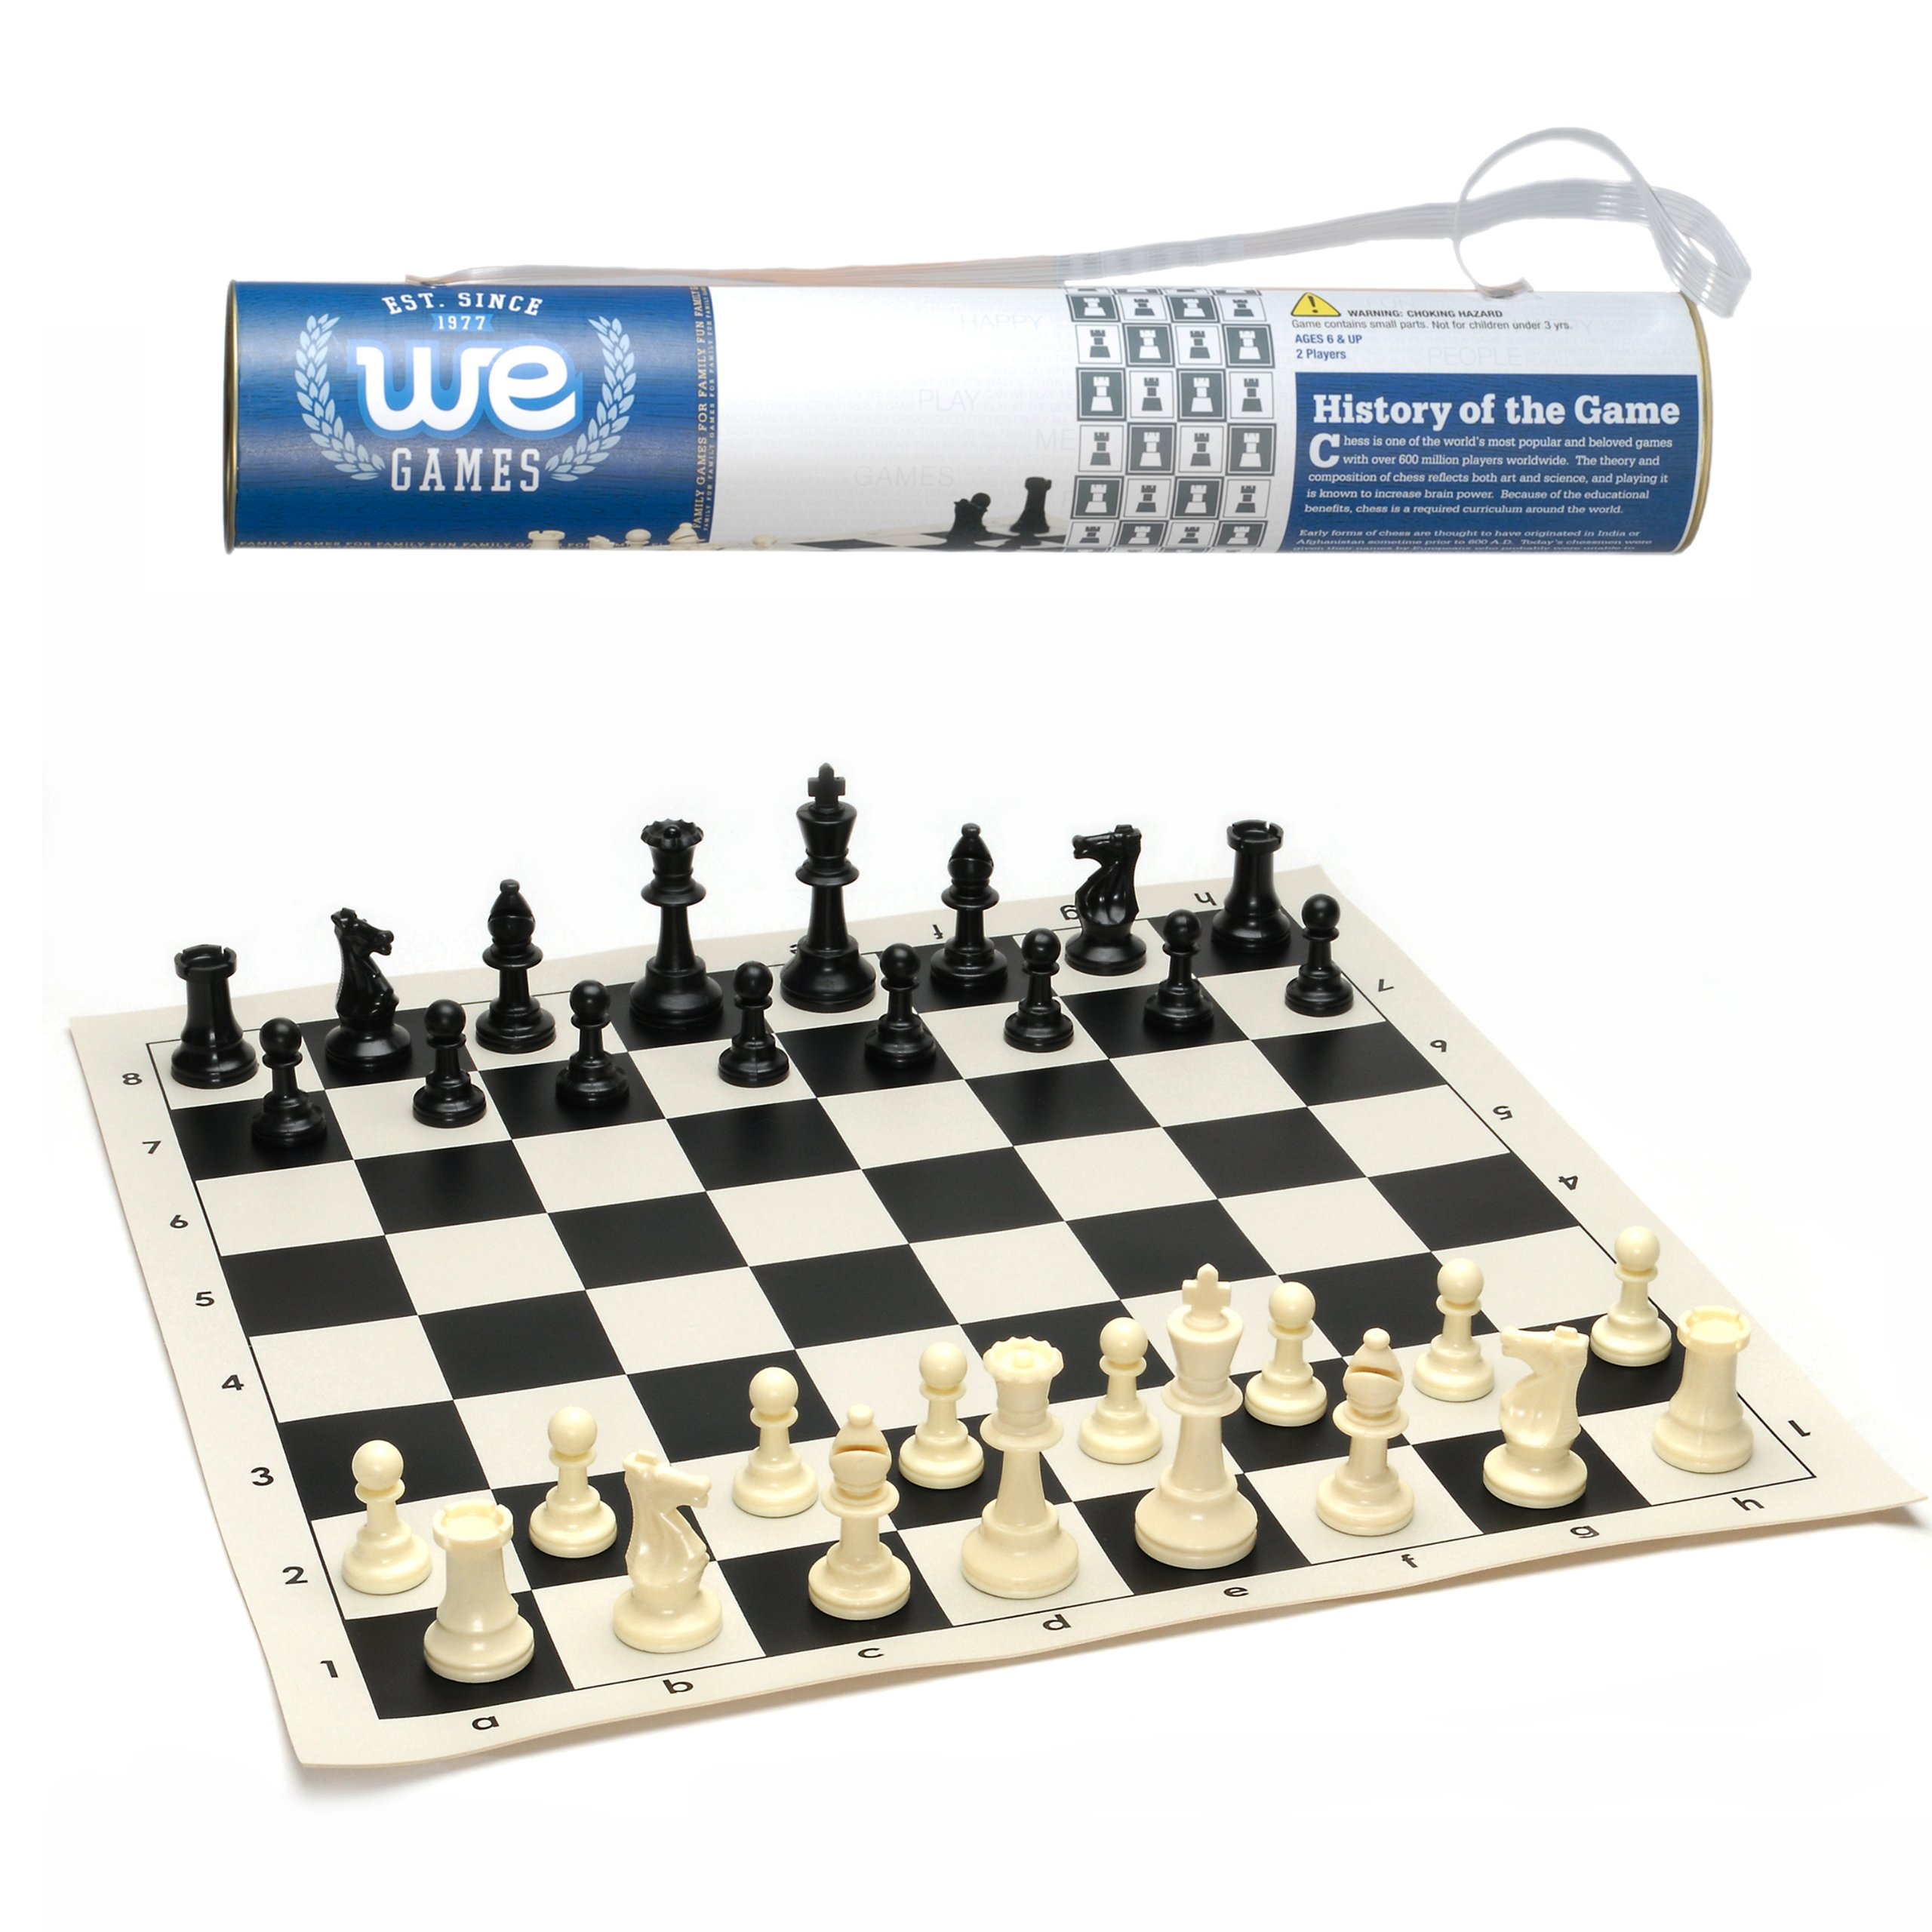 WE Games Roll-up Travel Chess Set in Carry Tube with Shoulder Strap - A Great Beginner Chess Set